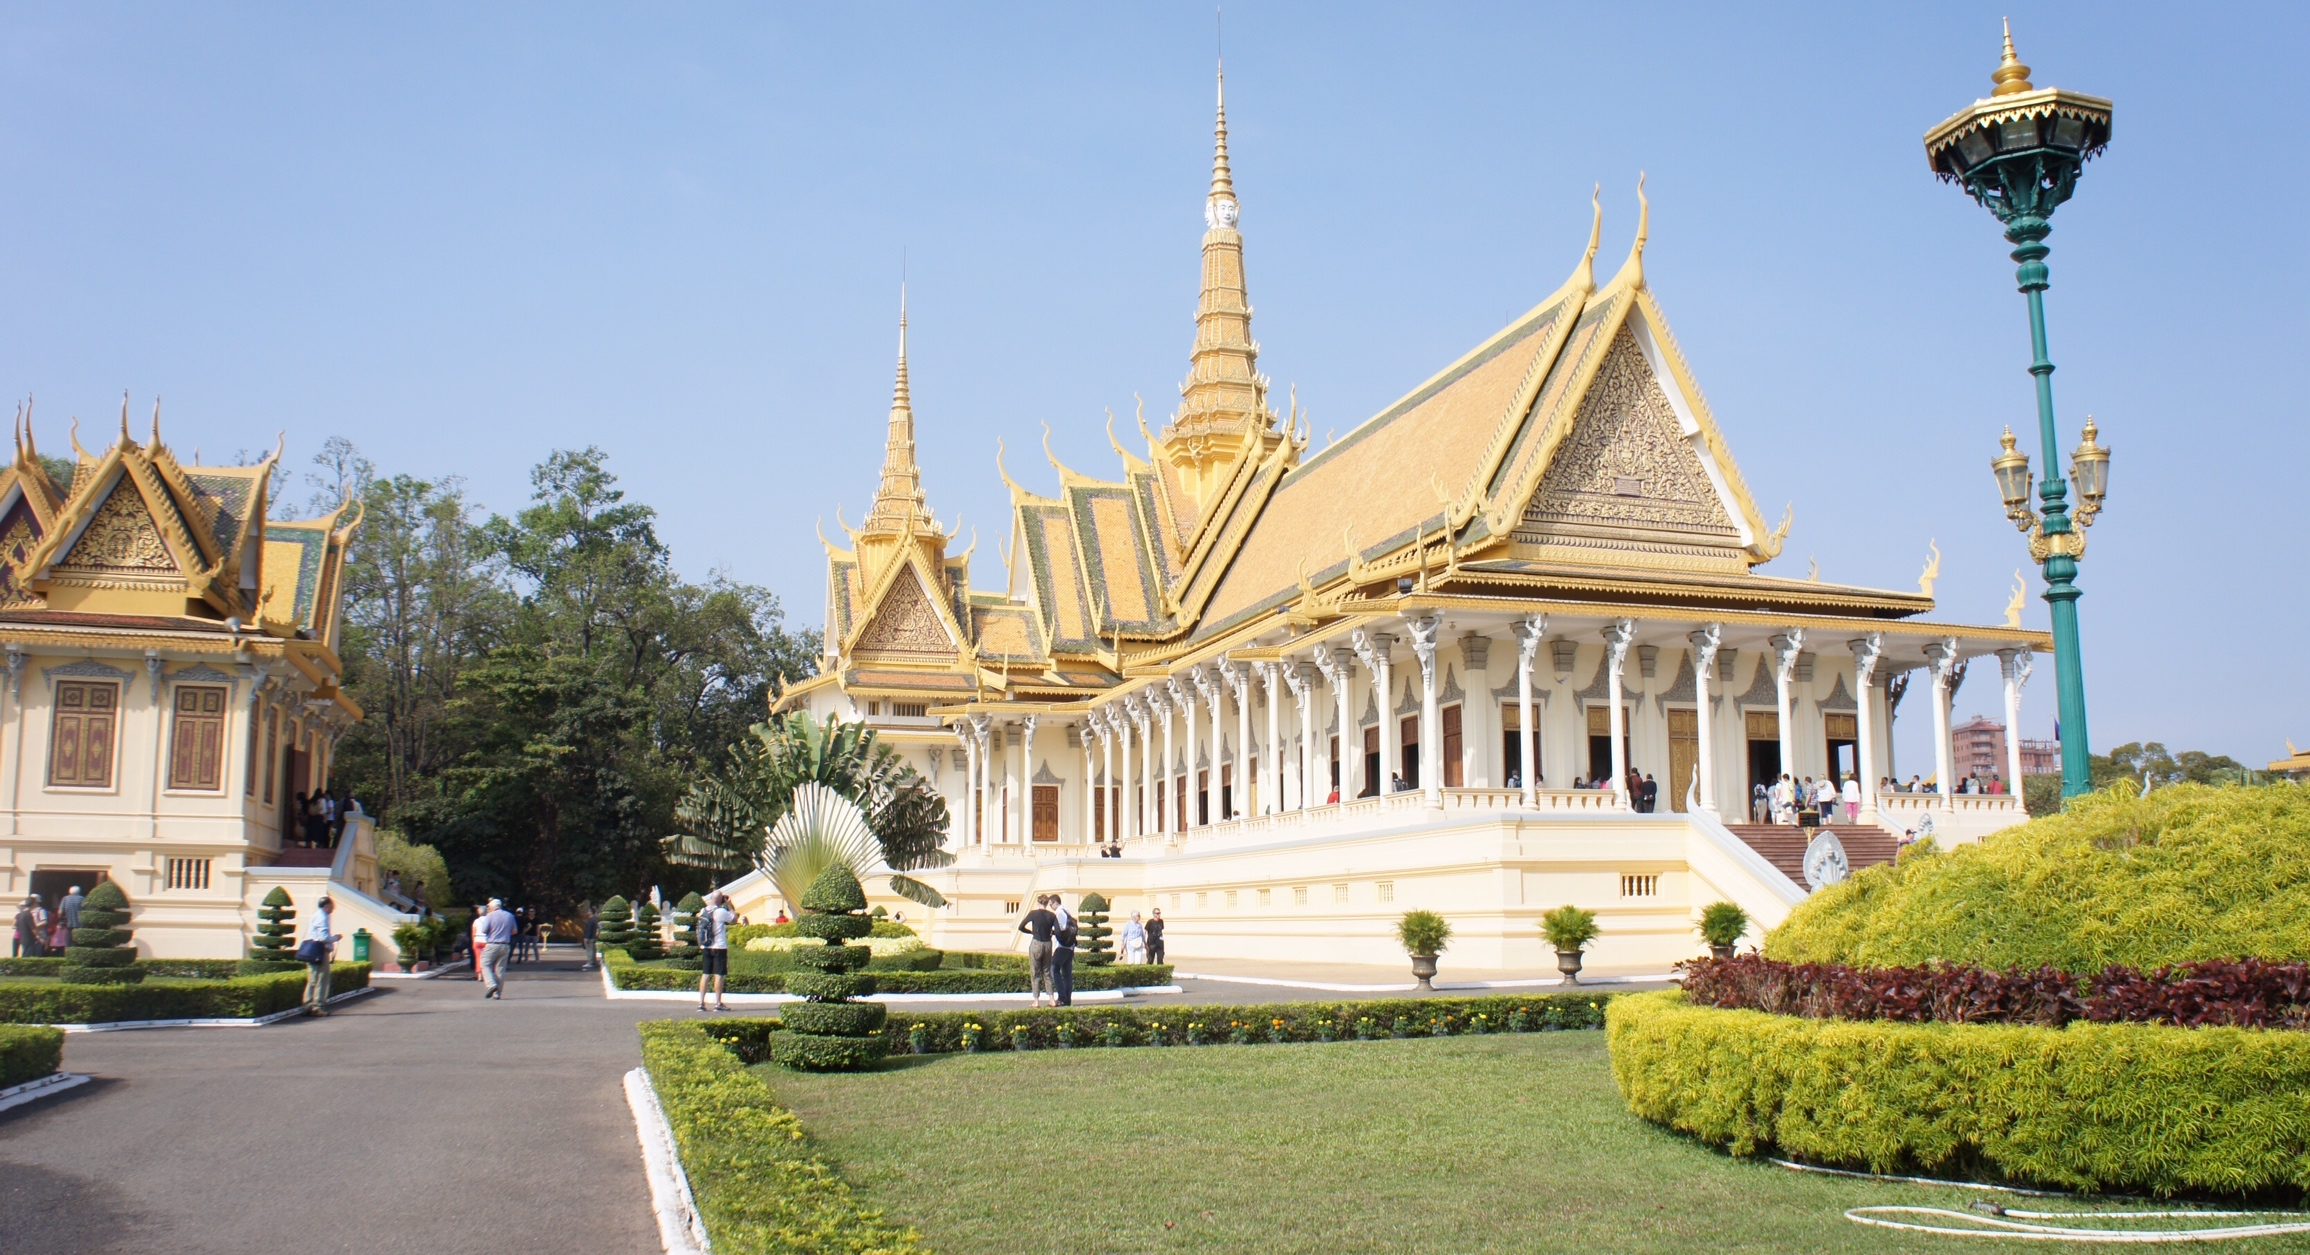 The throne hall of the Royal Palace in Phnom Penh, Cambodia